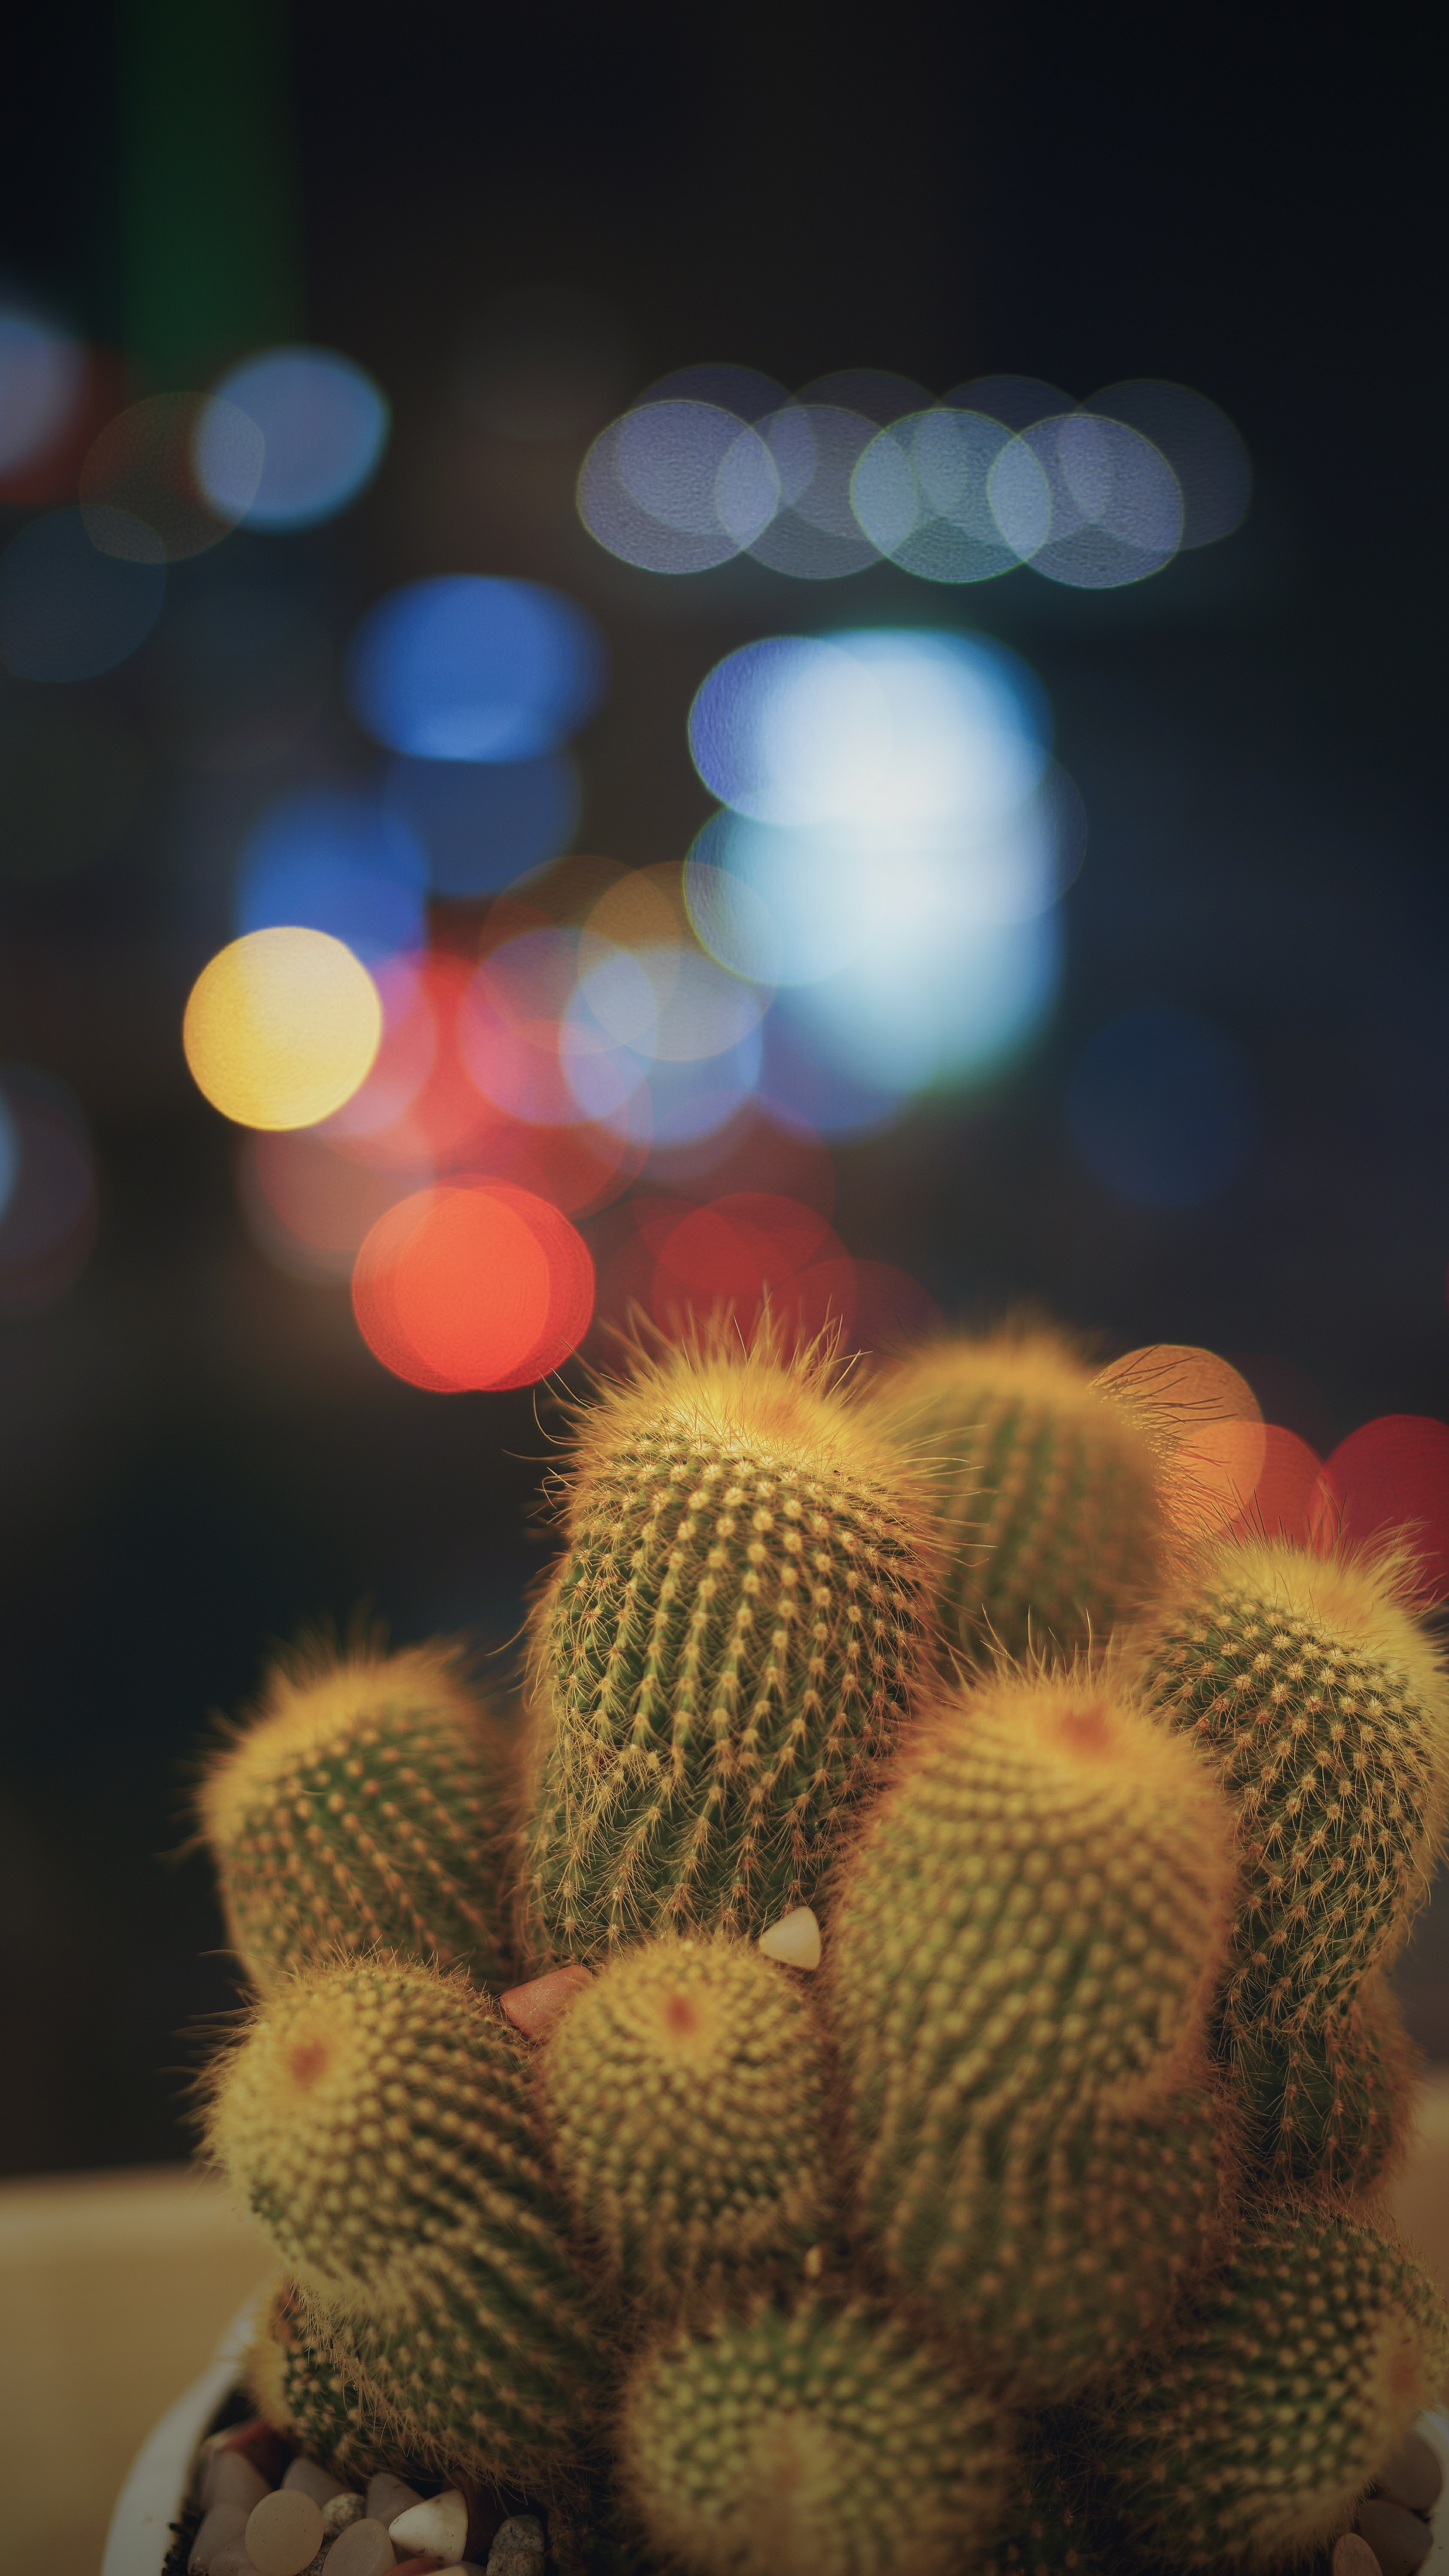 67418 download wallpaper Cactuses, Flowers, Glare, Barbed, Spiny, Bokeh, Boquet, Indoor Plant, Houseplant, Succulents screensavers and pictures for free